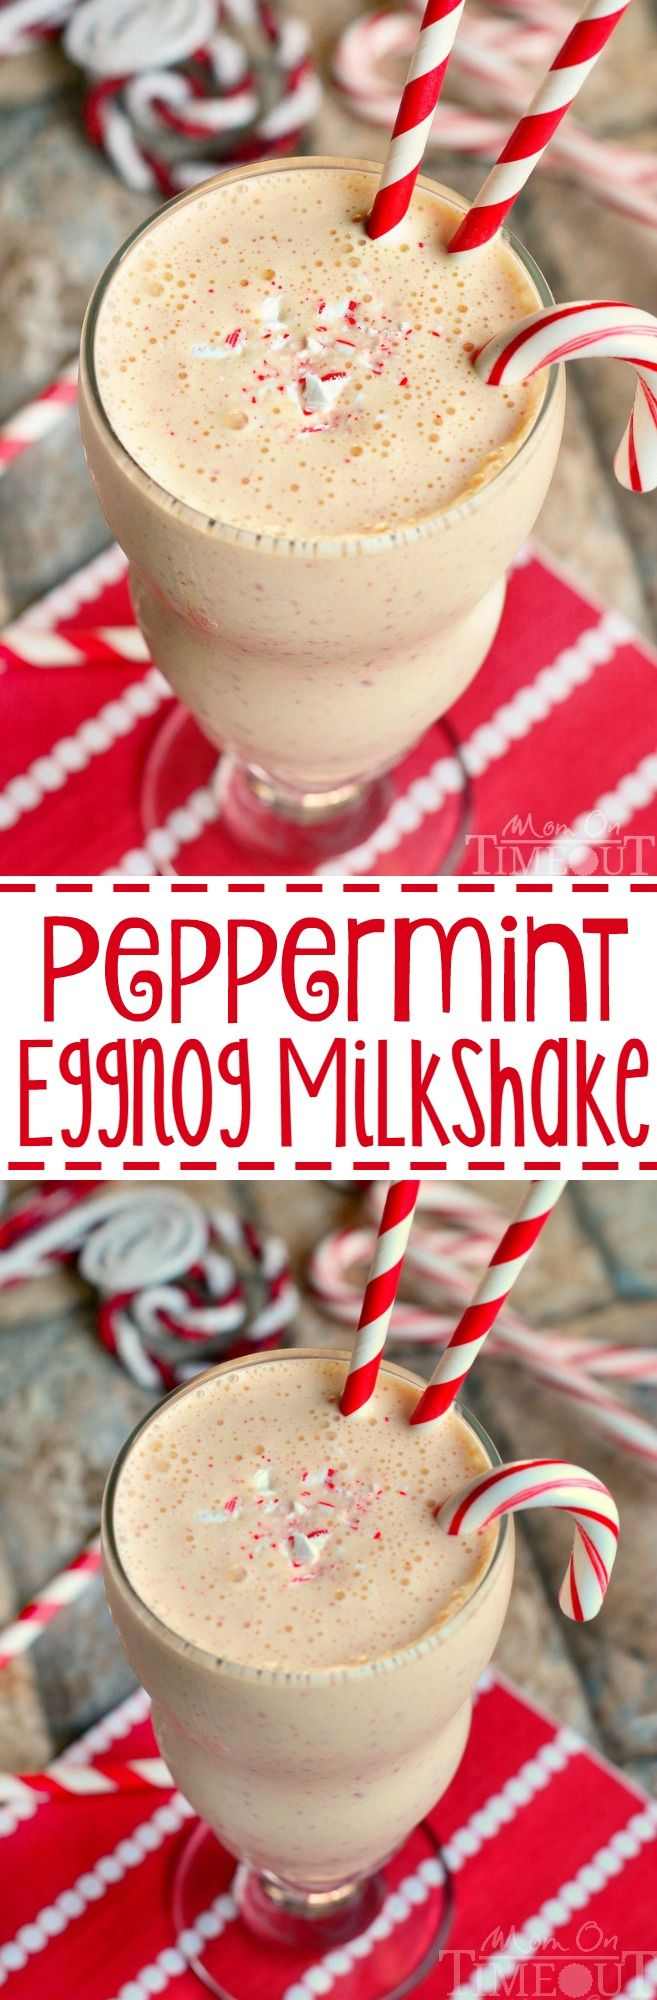 Two of my favorite holiday flavors come together magnificently in this exceptional Peppermint Eggnog Milkshake! An amazing drink for your next holiday or Christmas party!: